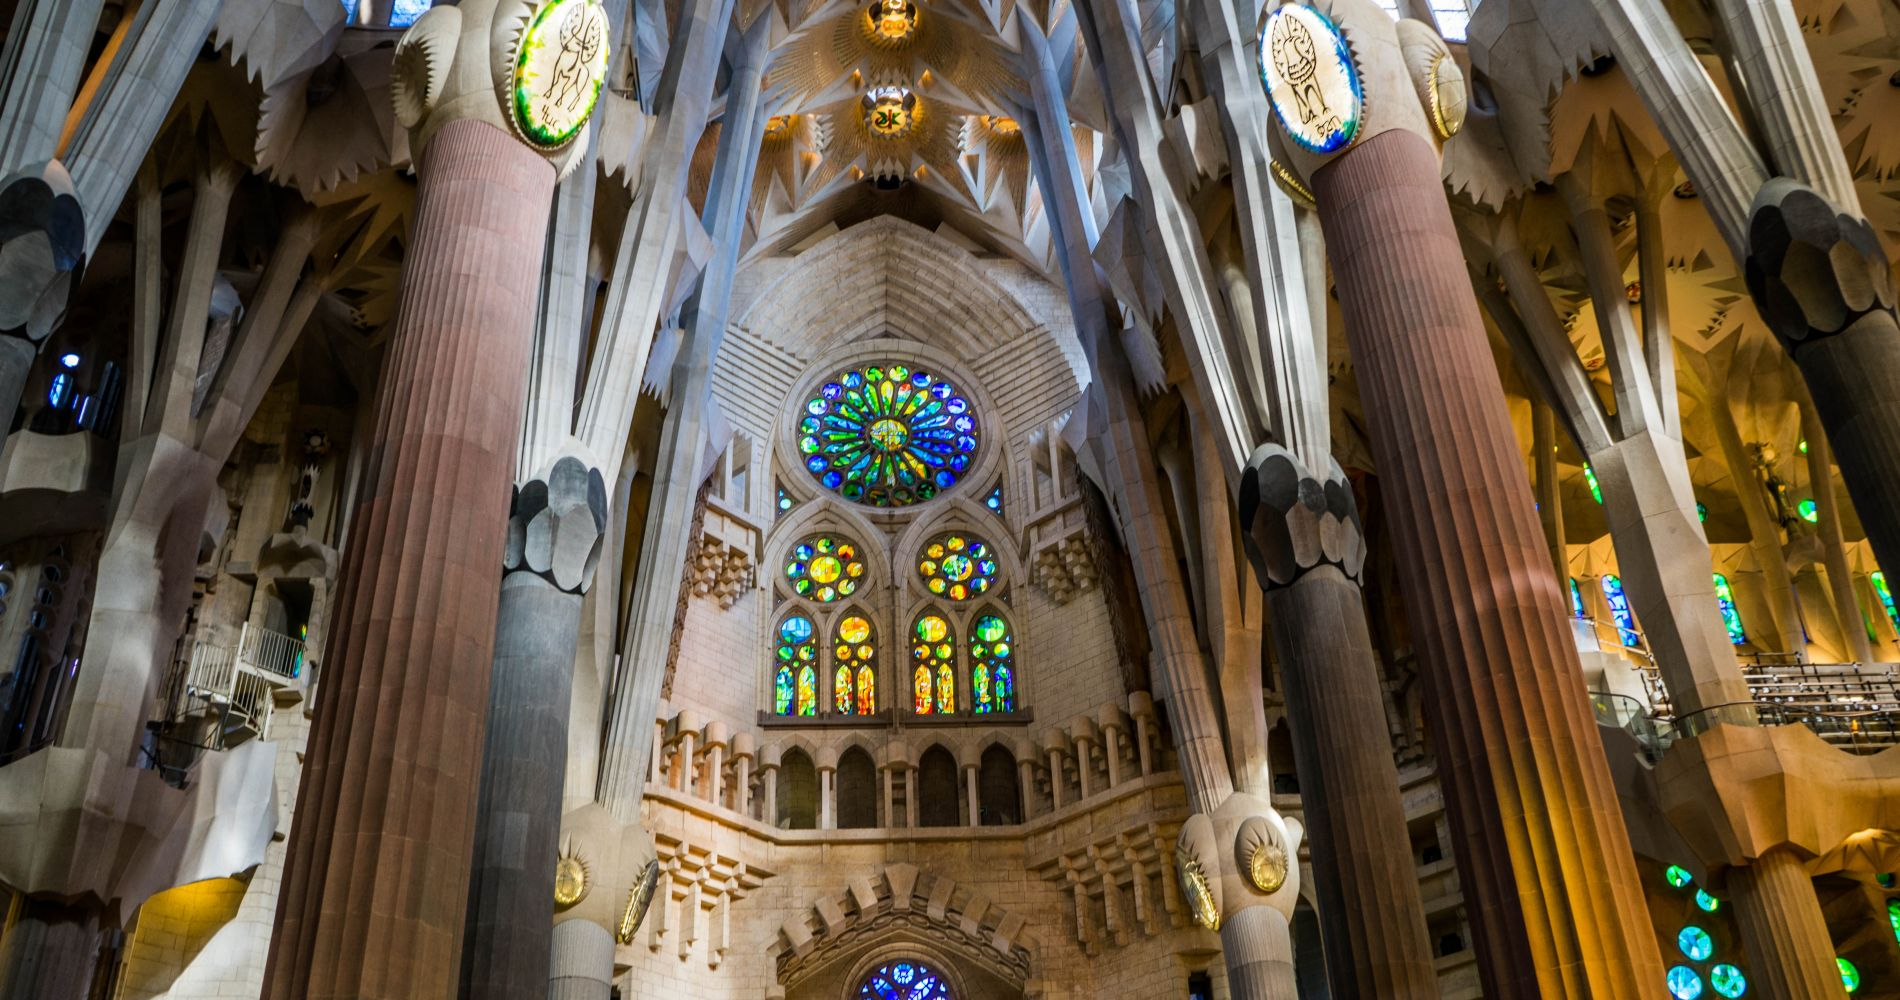 Architecture Gifts For Him La Sagrada Familia Guided Experience In Spain For Two